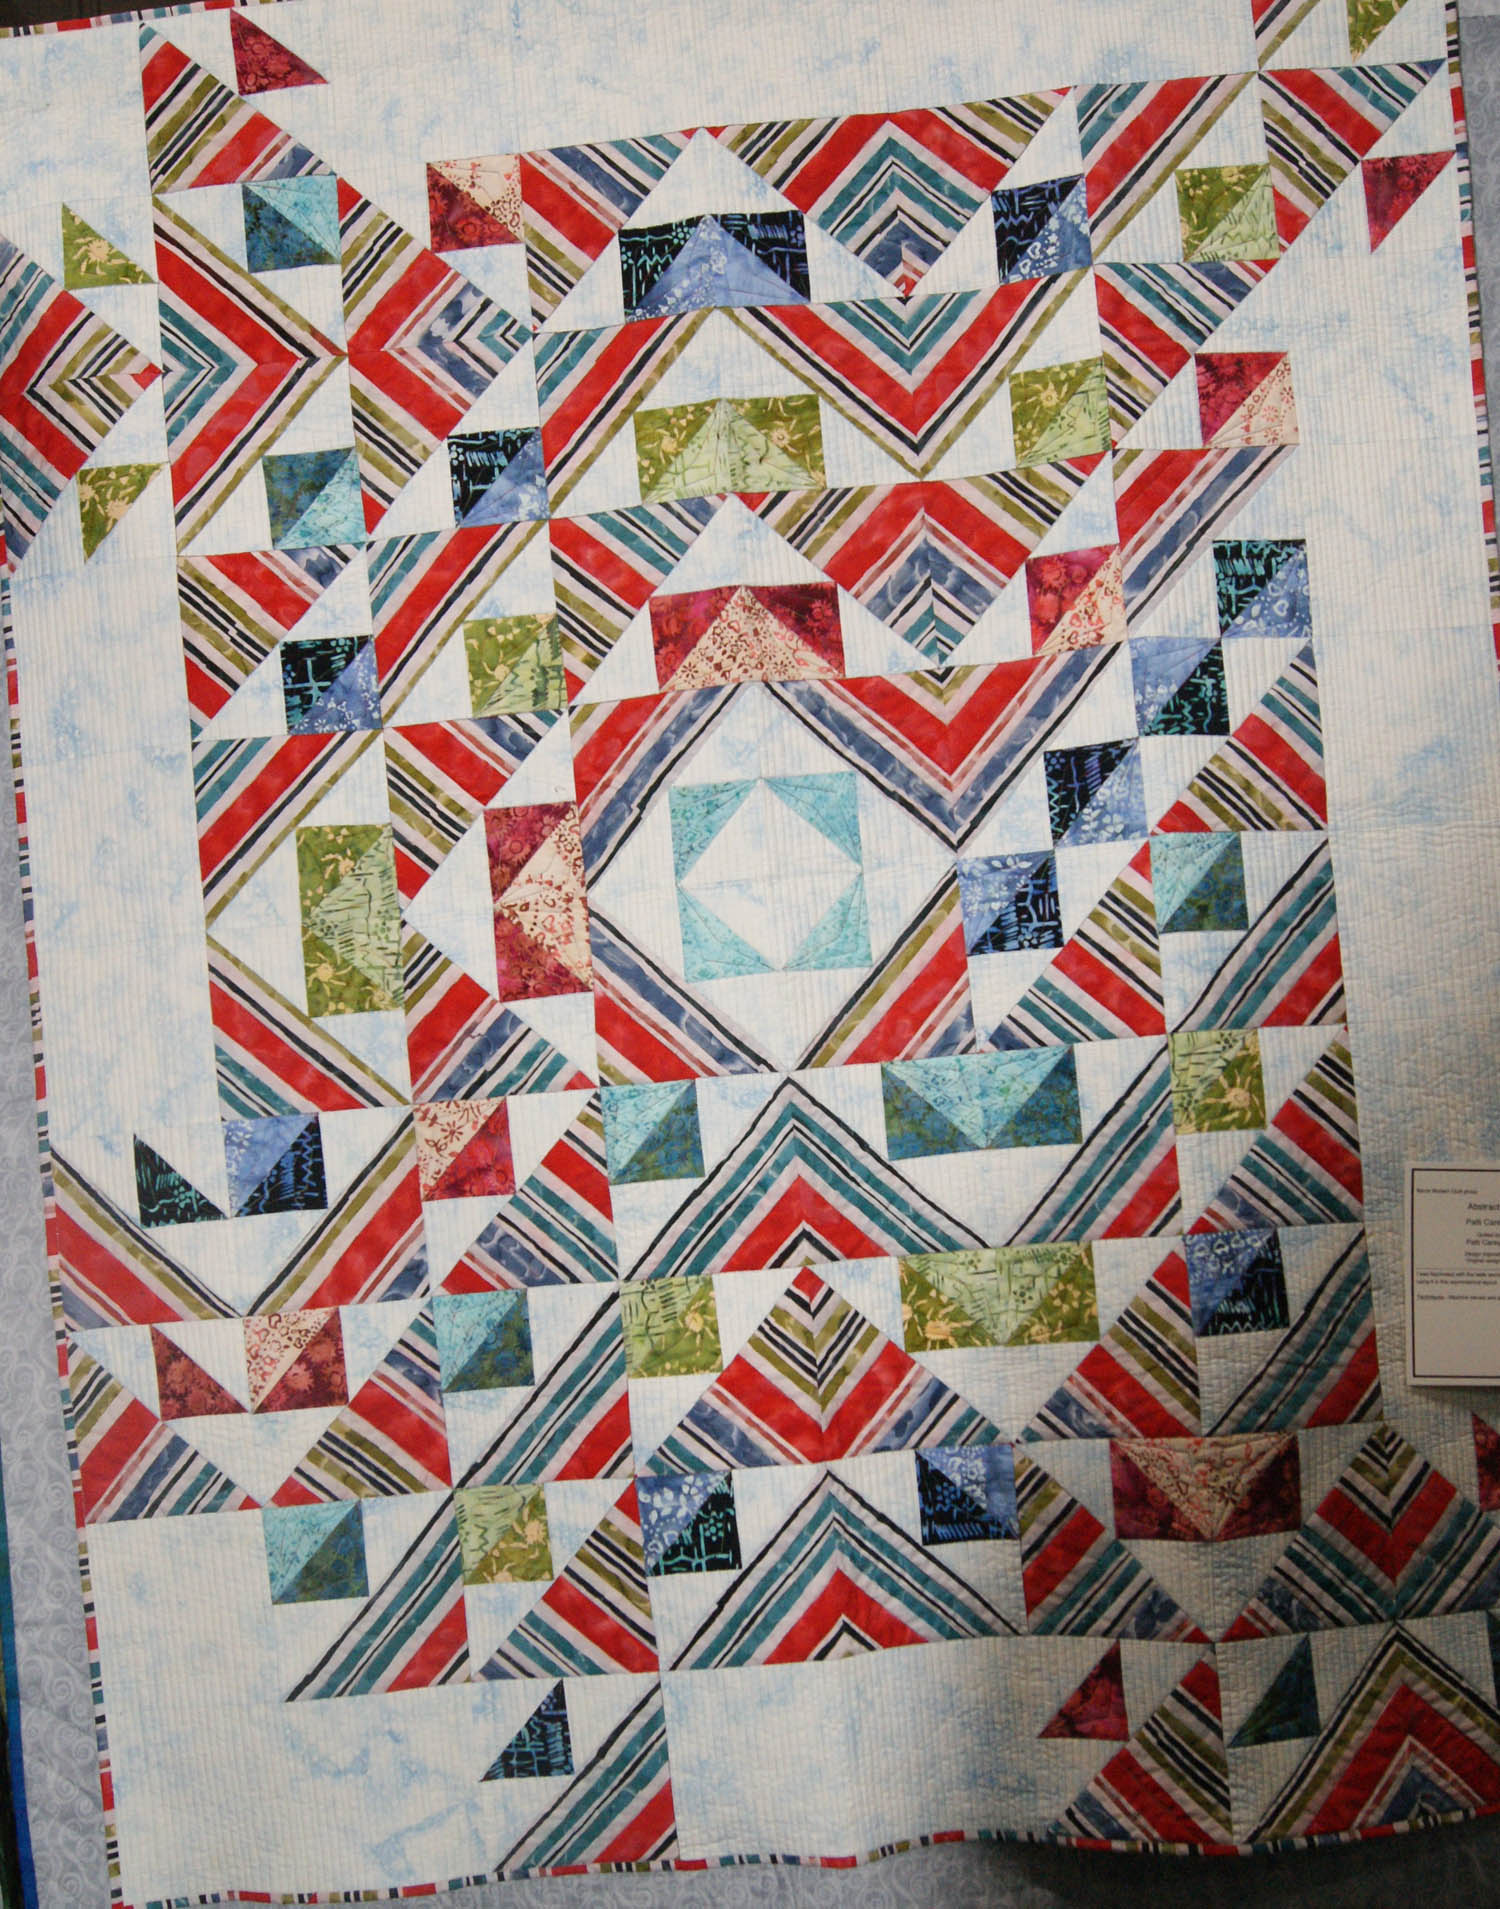 Happy Belated Canadian Thanksgiving & Local Quilt Show-Part 2 ... : canadian quilt - Adamdwight.com